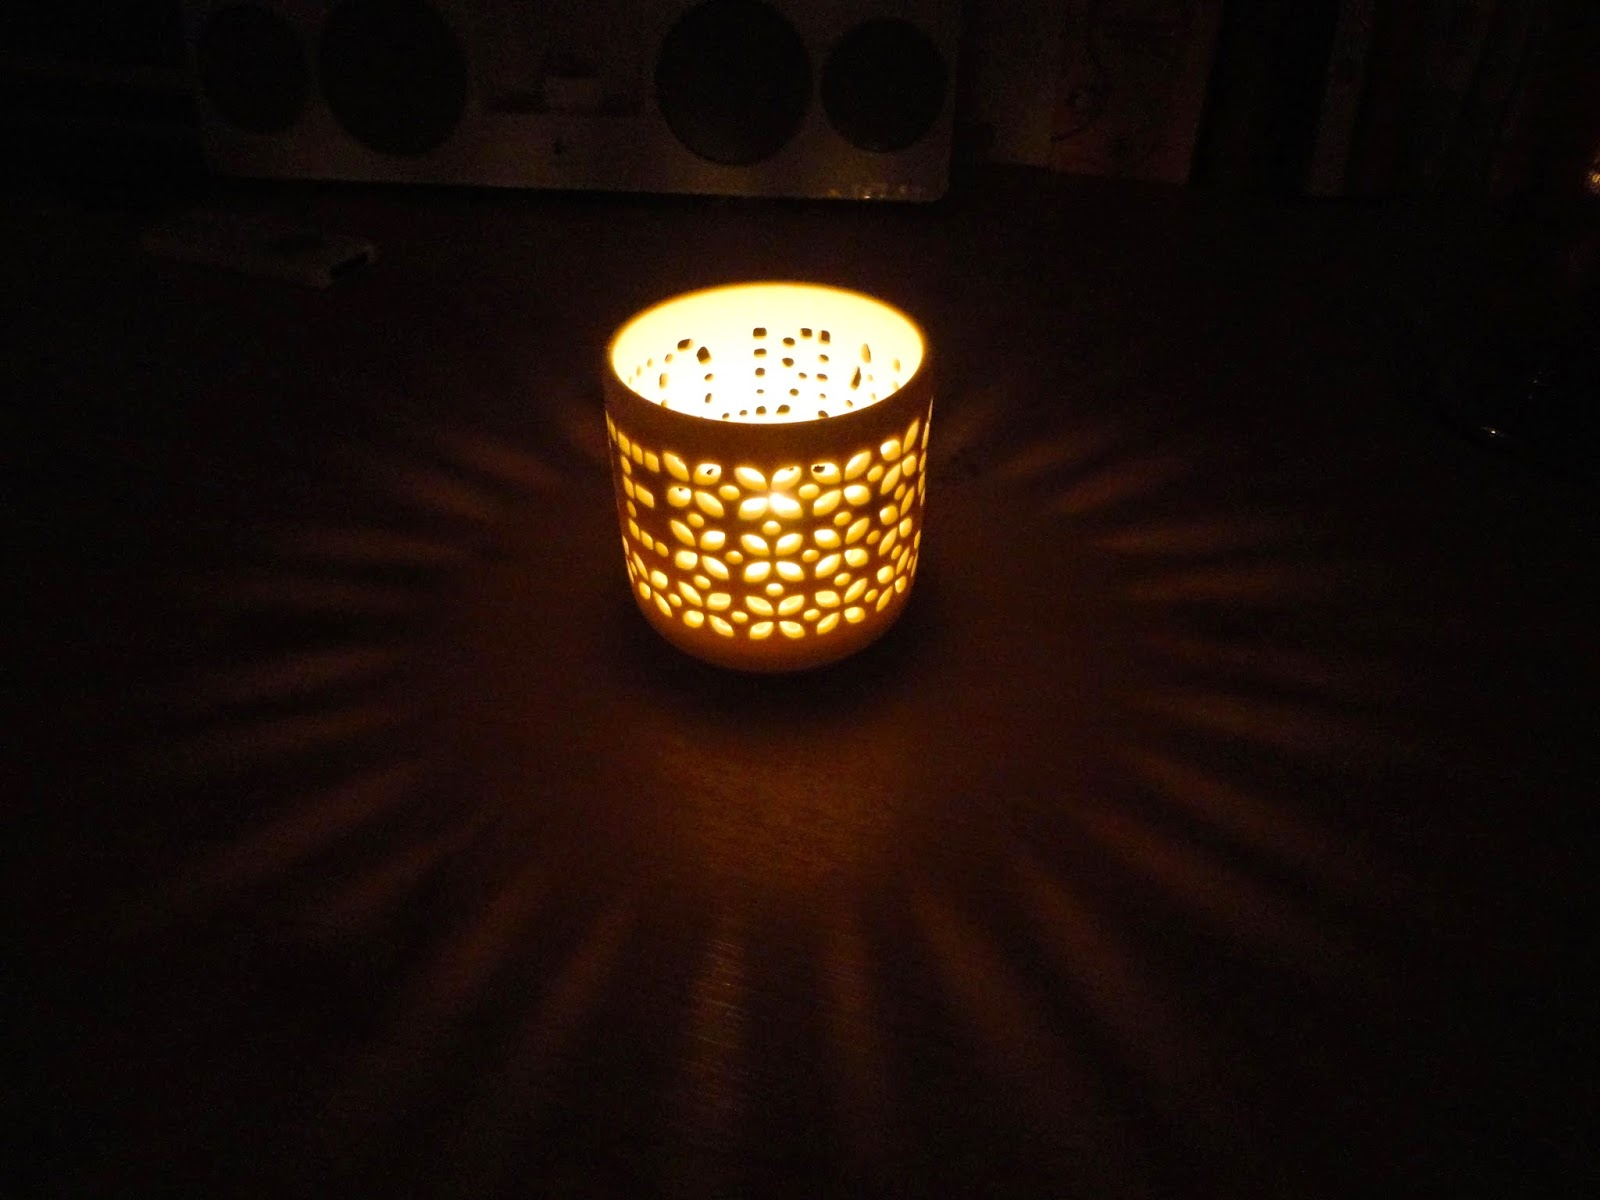 Tea light in white patterned ceramic candle holder